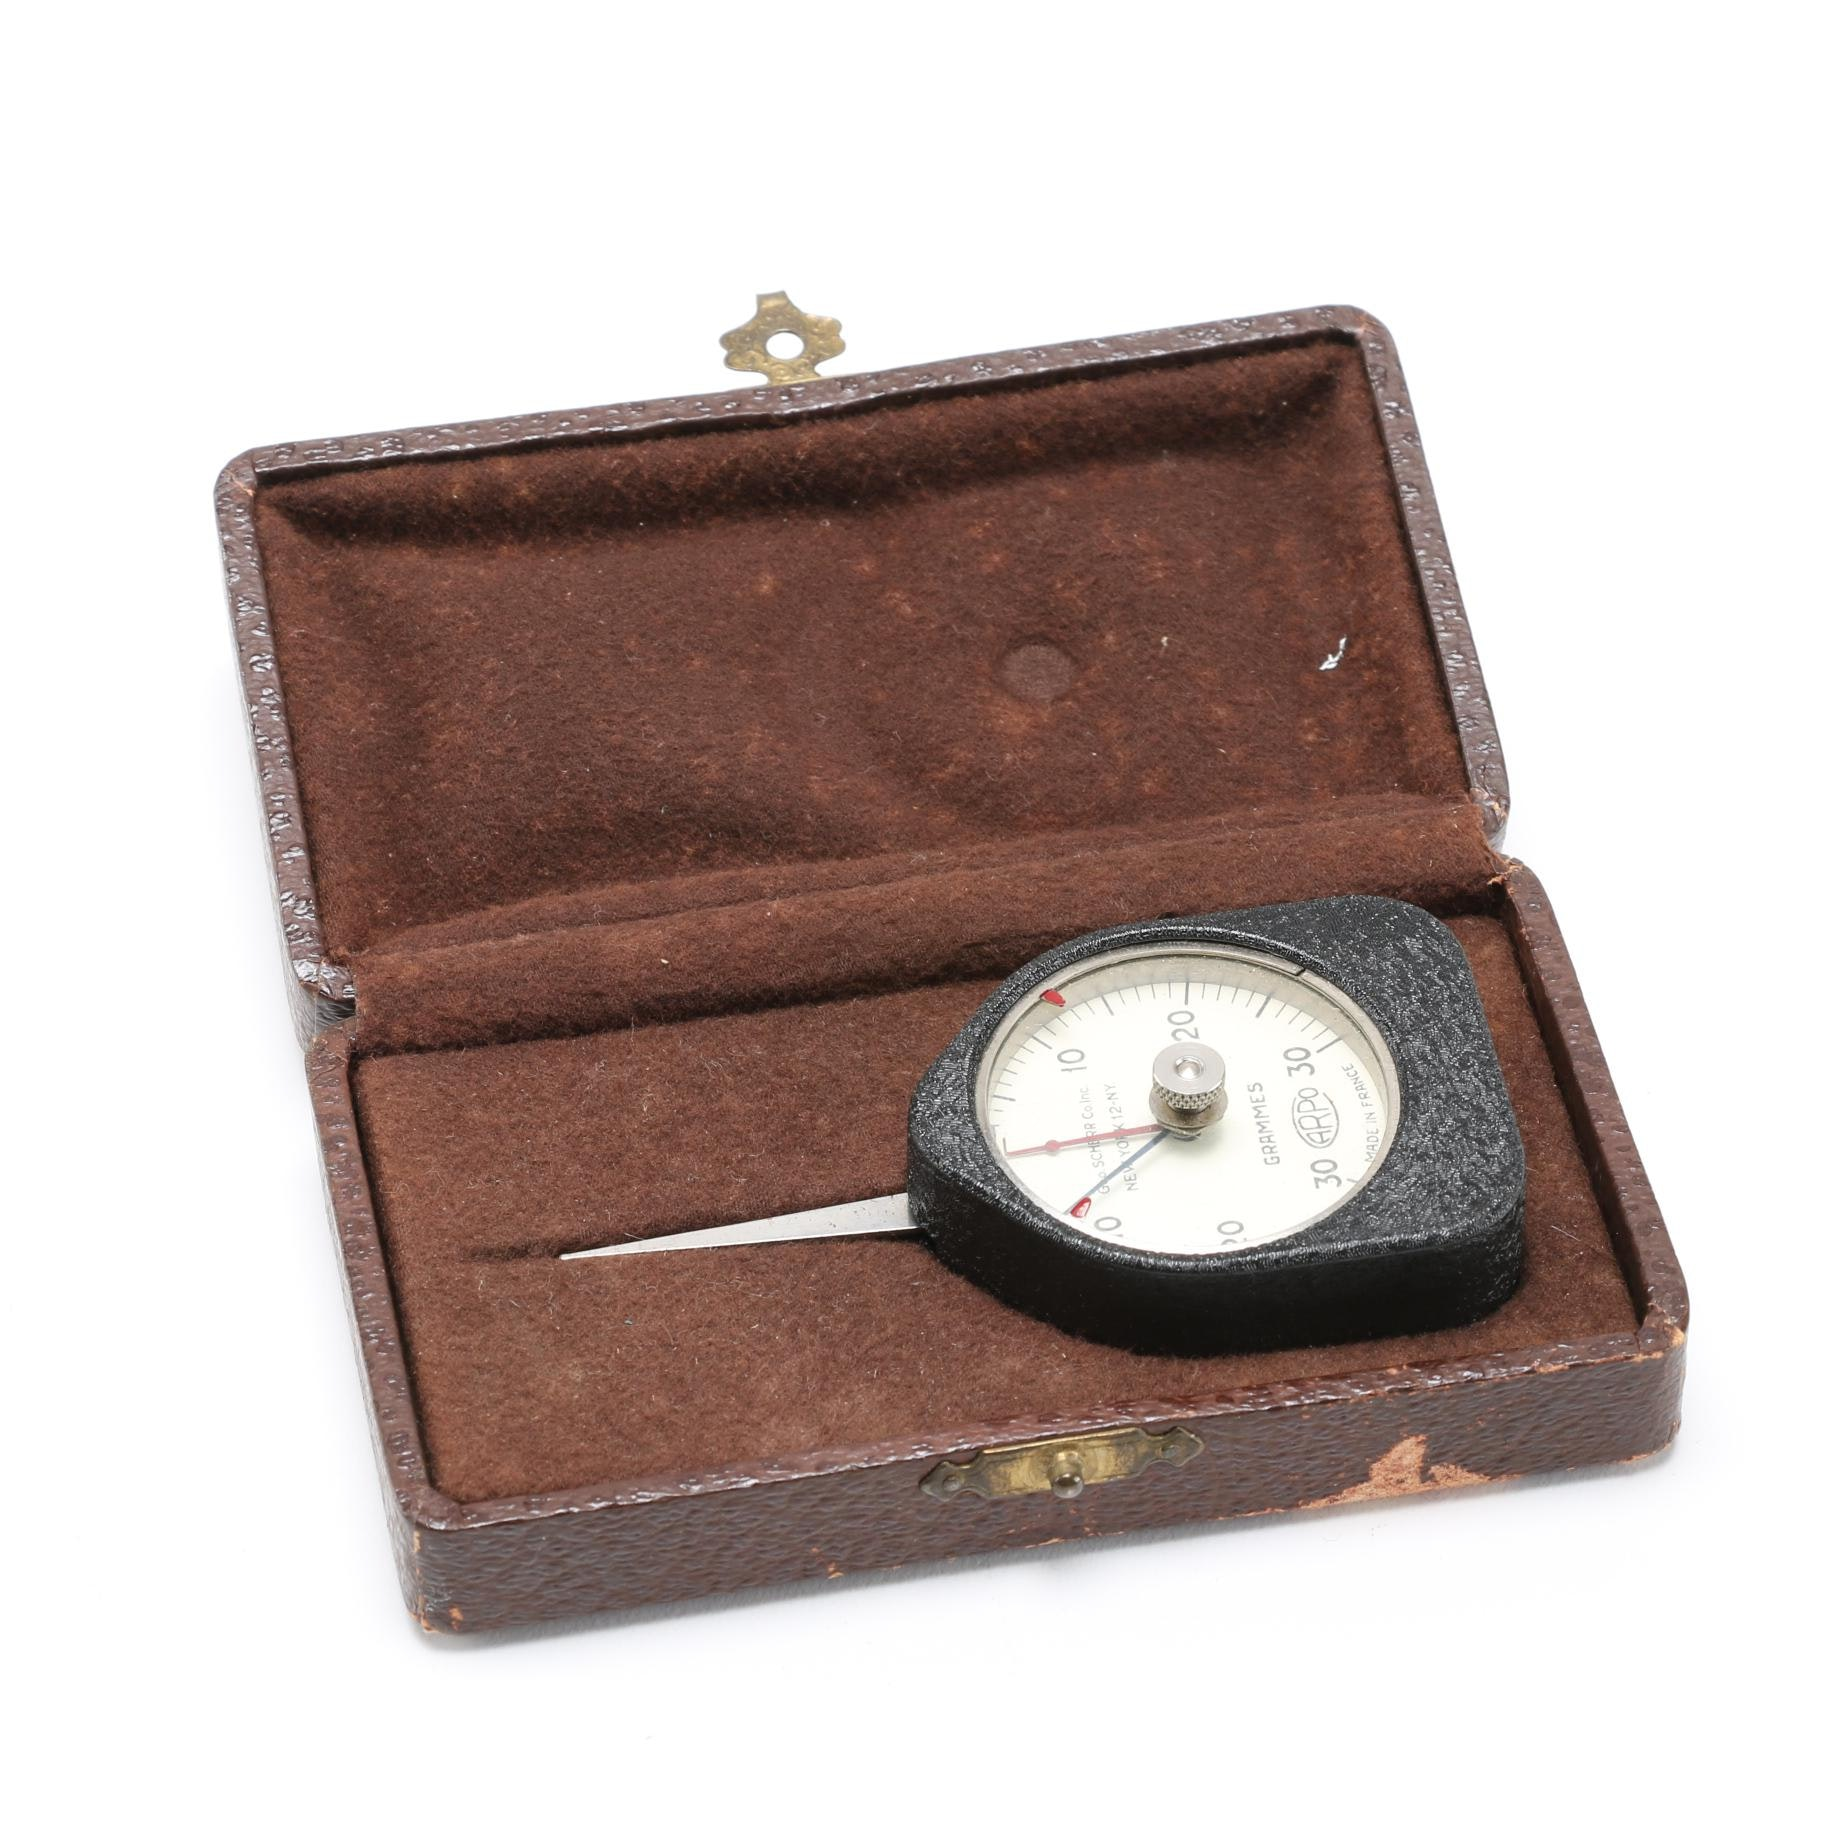 Scherr Tumico Arpo Tension Gauge